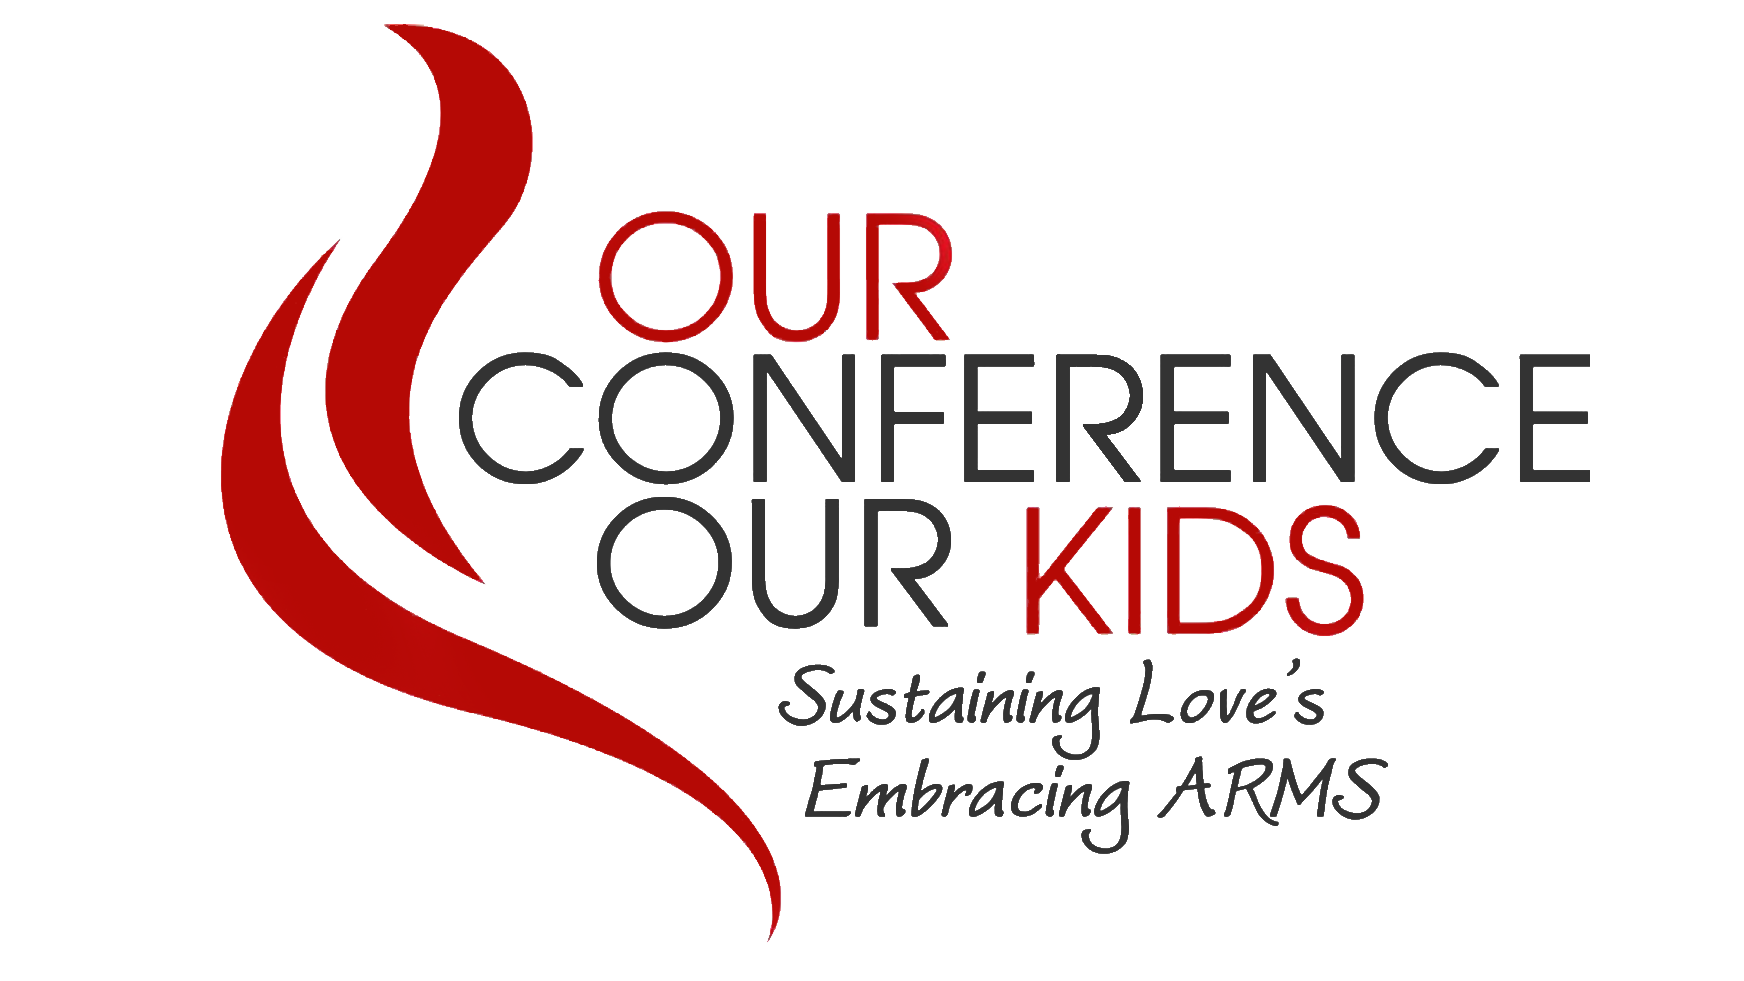 OUR CONFERENCE OUR KIDS